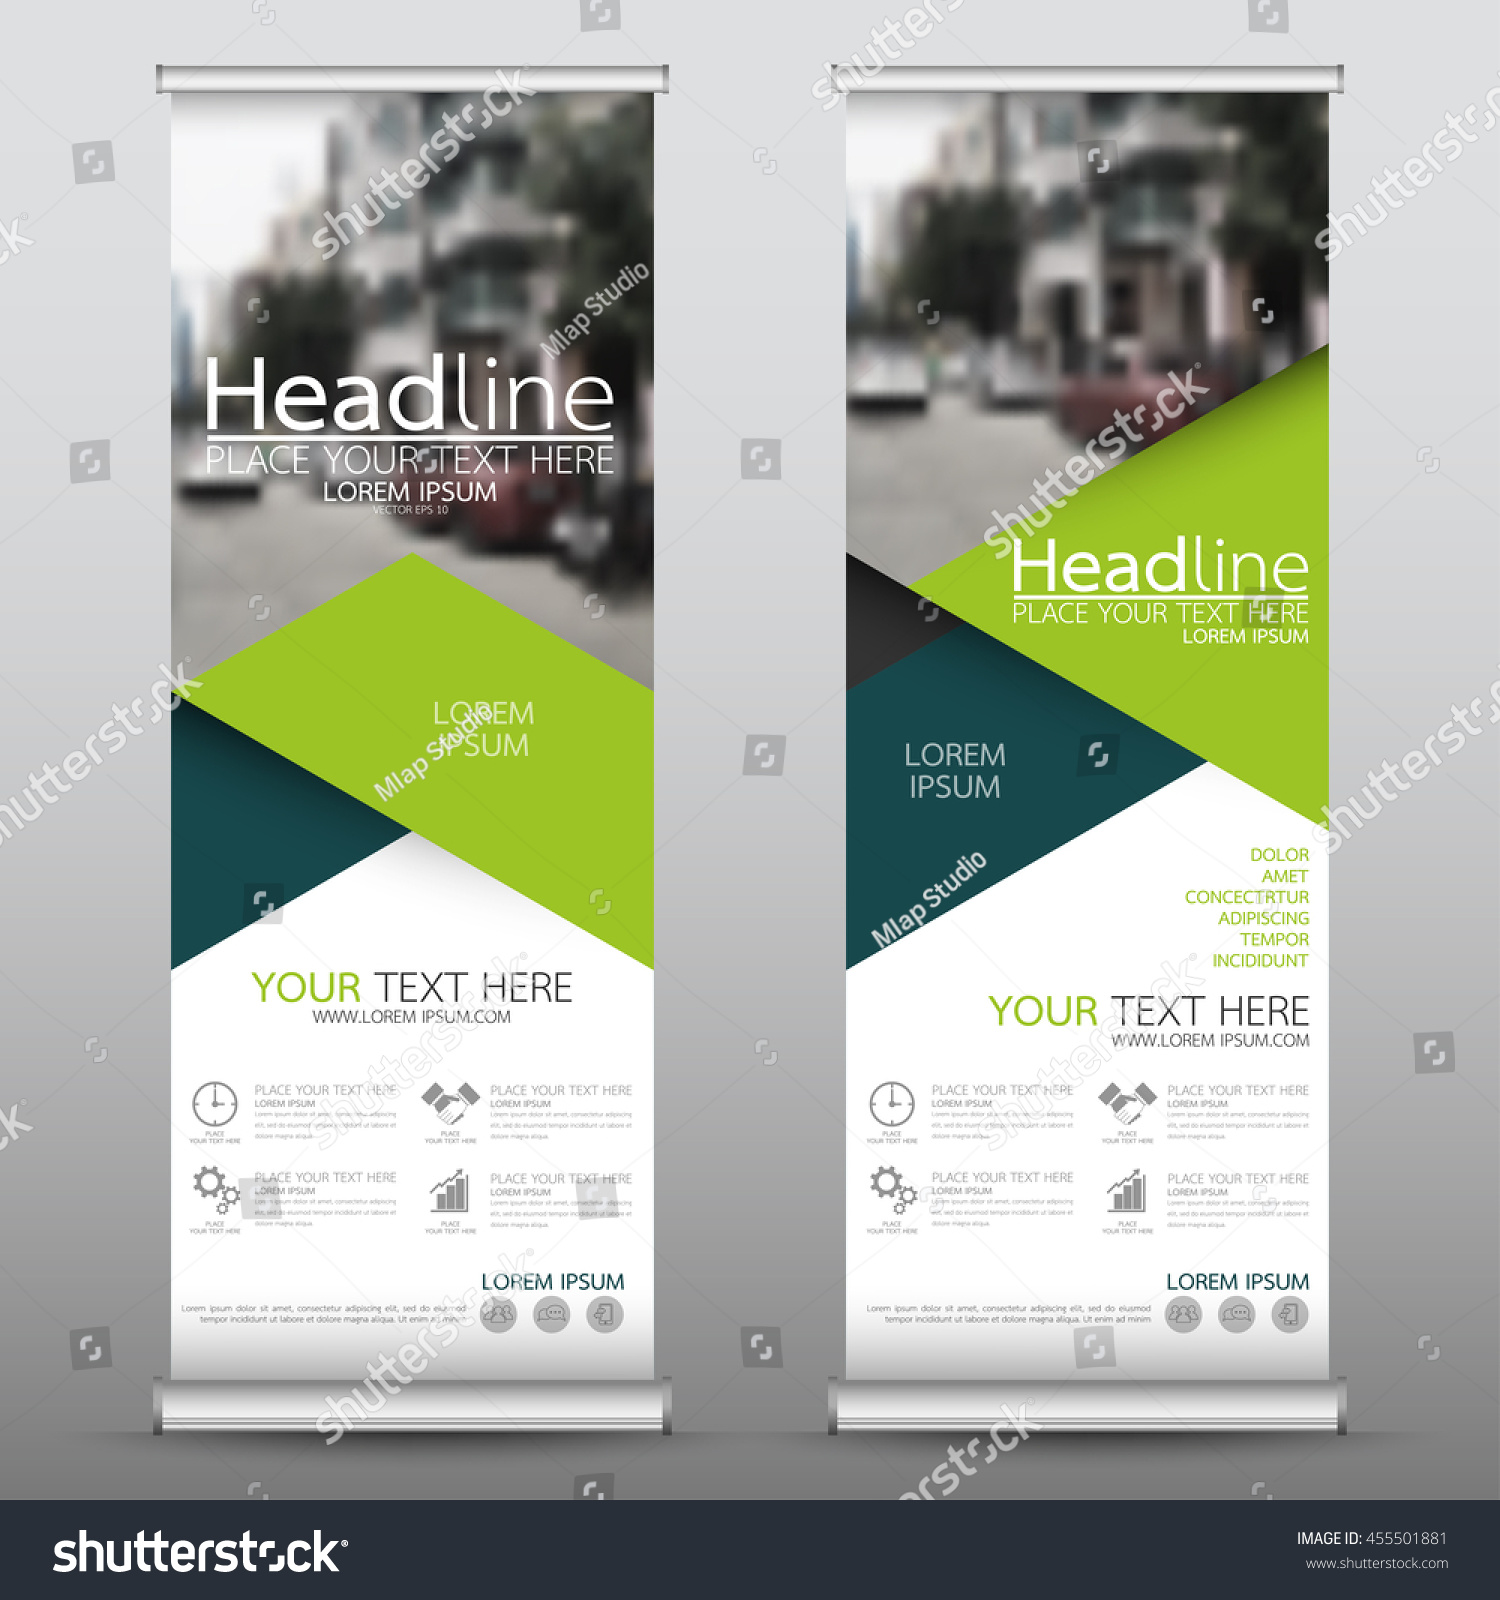 Green roll up business brochure flyer banner design vertical template - Green Triangle Roll Up Business Banner Design Vertical Template Vector Cover Presentation Abstract Geometric Background